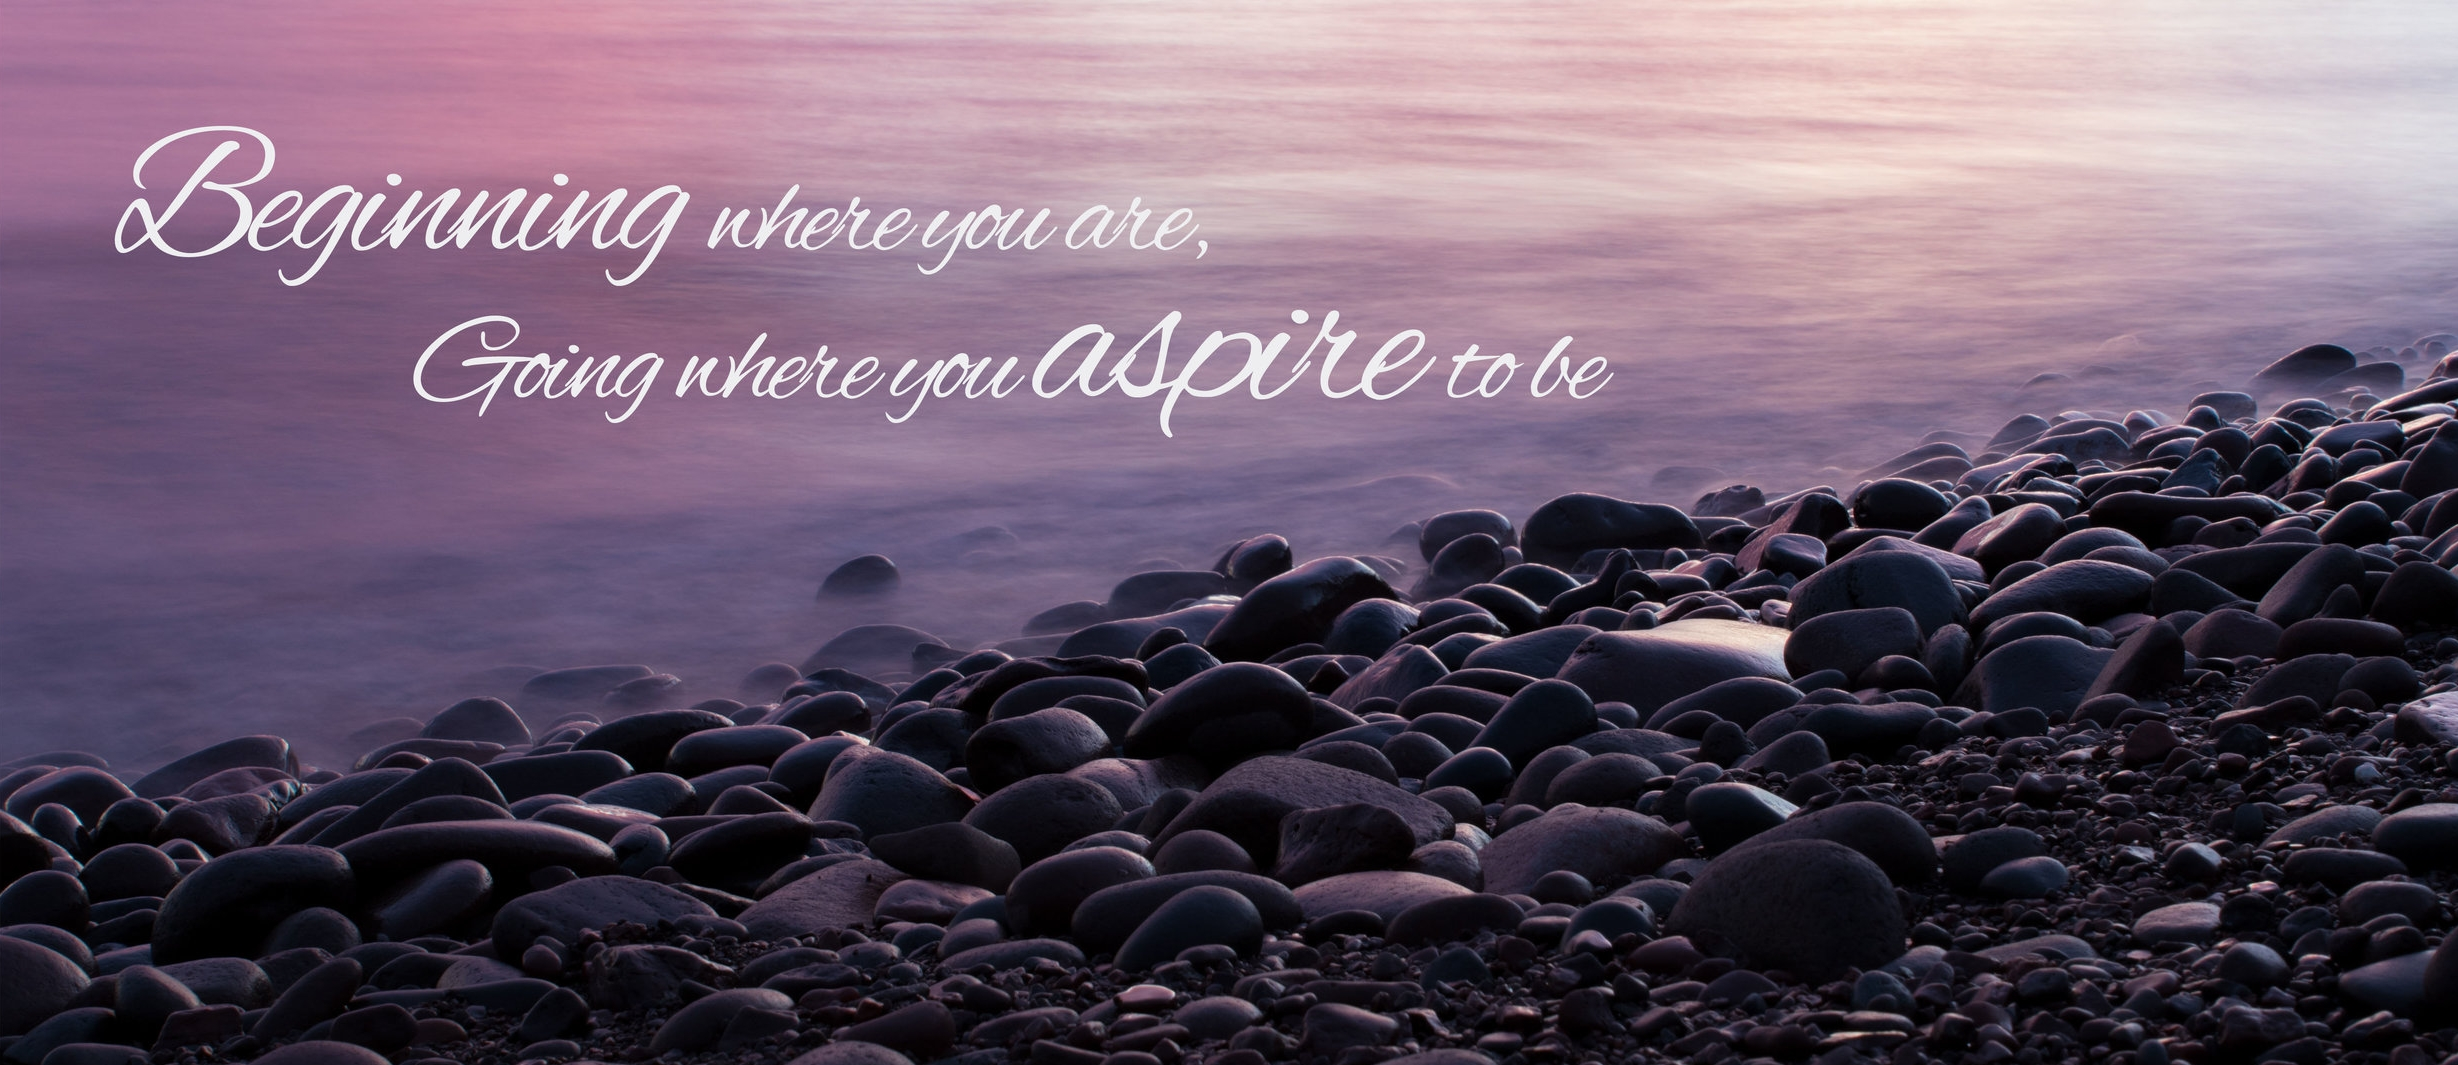 Aspire Counseling is here to help you get back on track and live how you want to live.